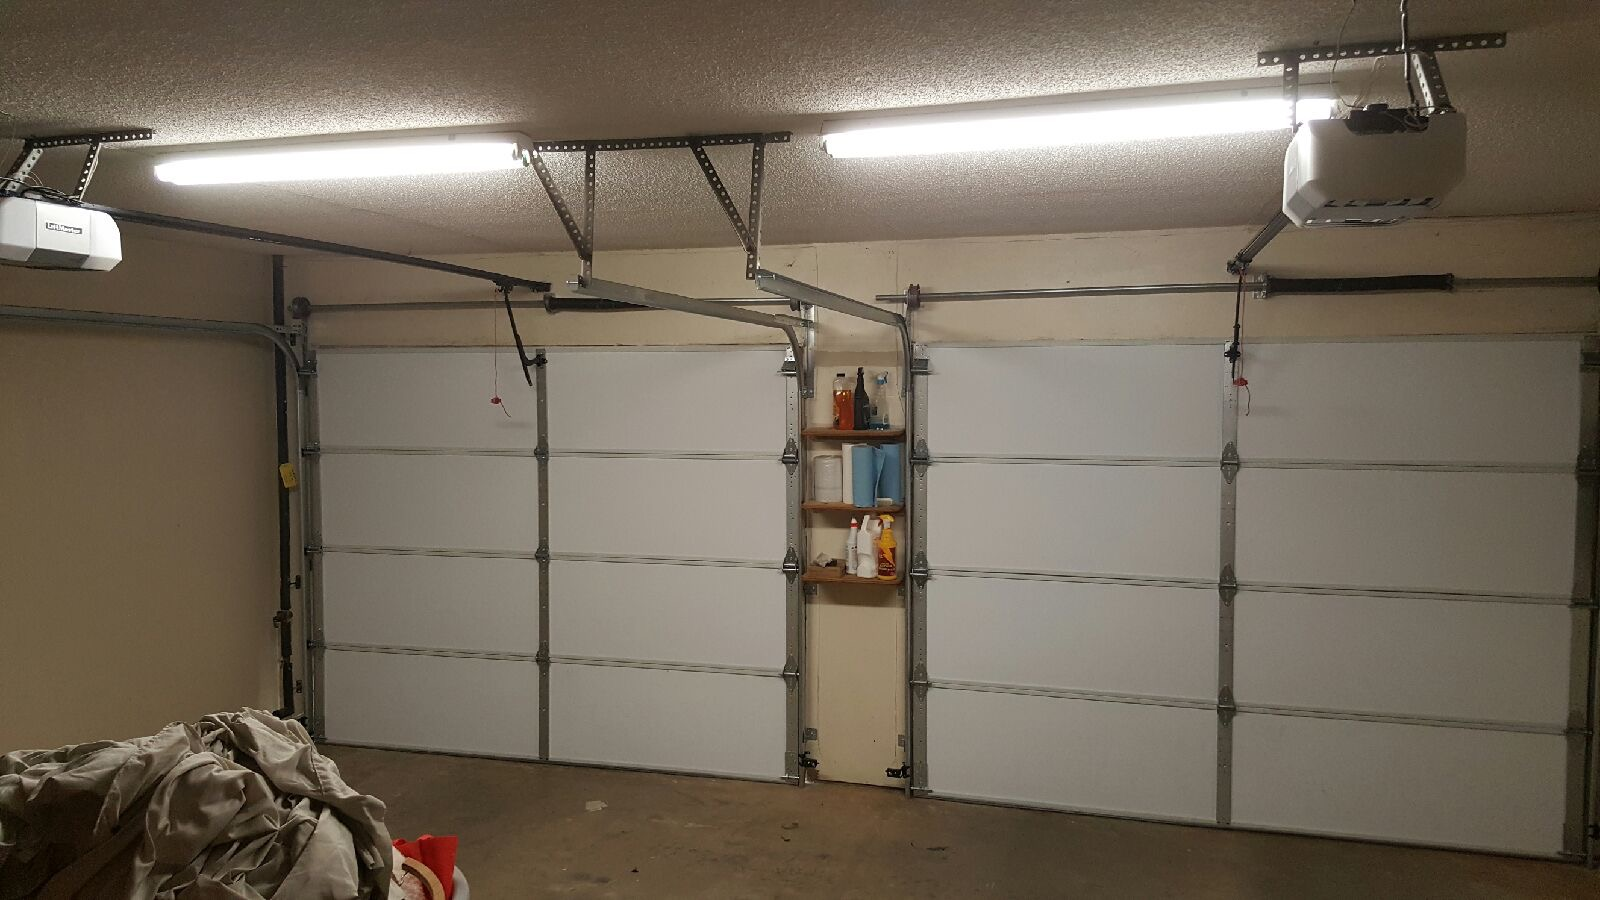 Mr Garage Door Peachtree City  Mr Garage Door. Glass Shower Door Cleaner. D&d Garage Doors. Vintage Door Chimes. Marvin Window And Doors. Sliding Glass Door Shades. 20x30 Garage Plans. Steel Windows And Doors. Glass Dog Door